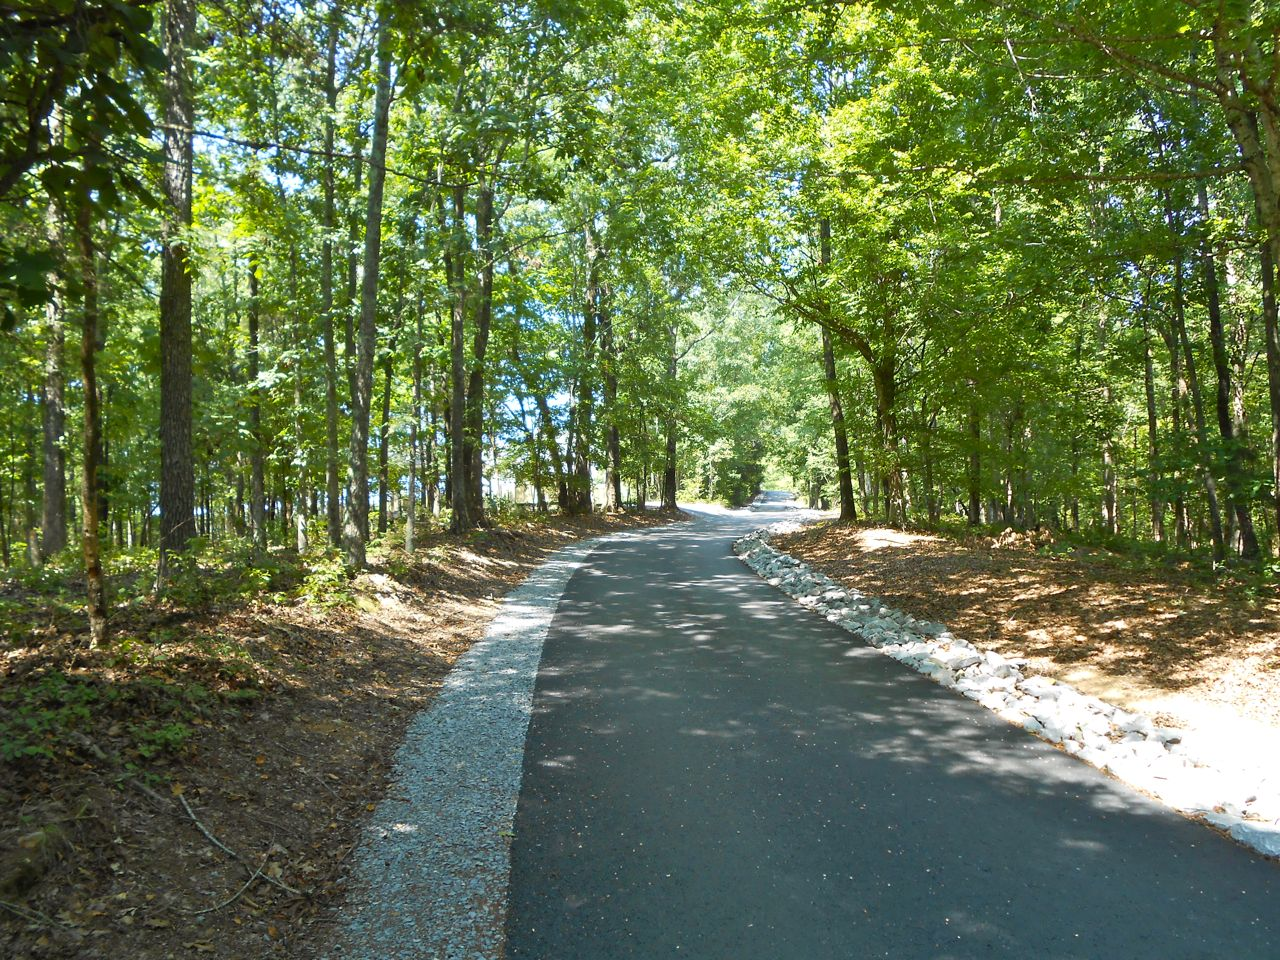 Over two miles of paved driveway with rip rap, gravel edging and extensive culverts.